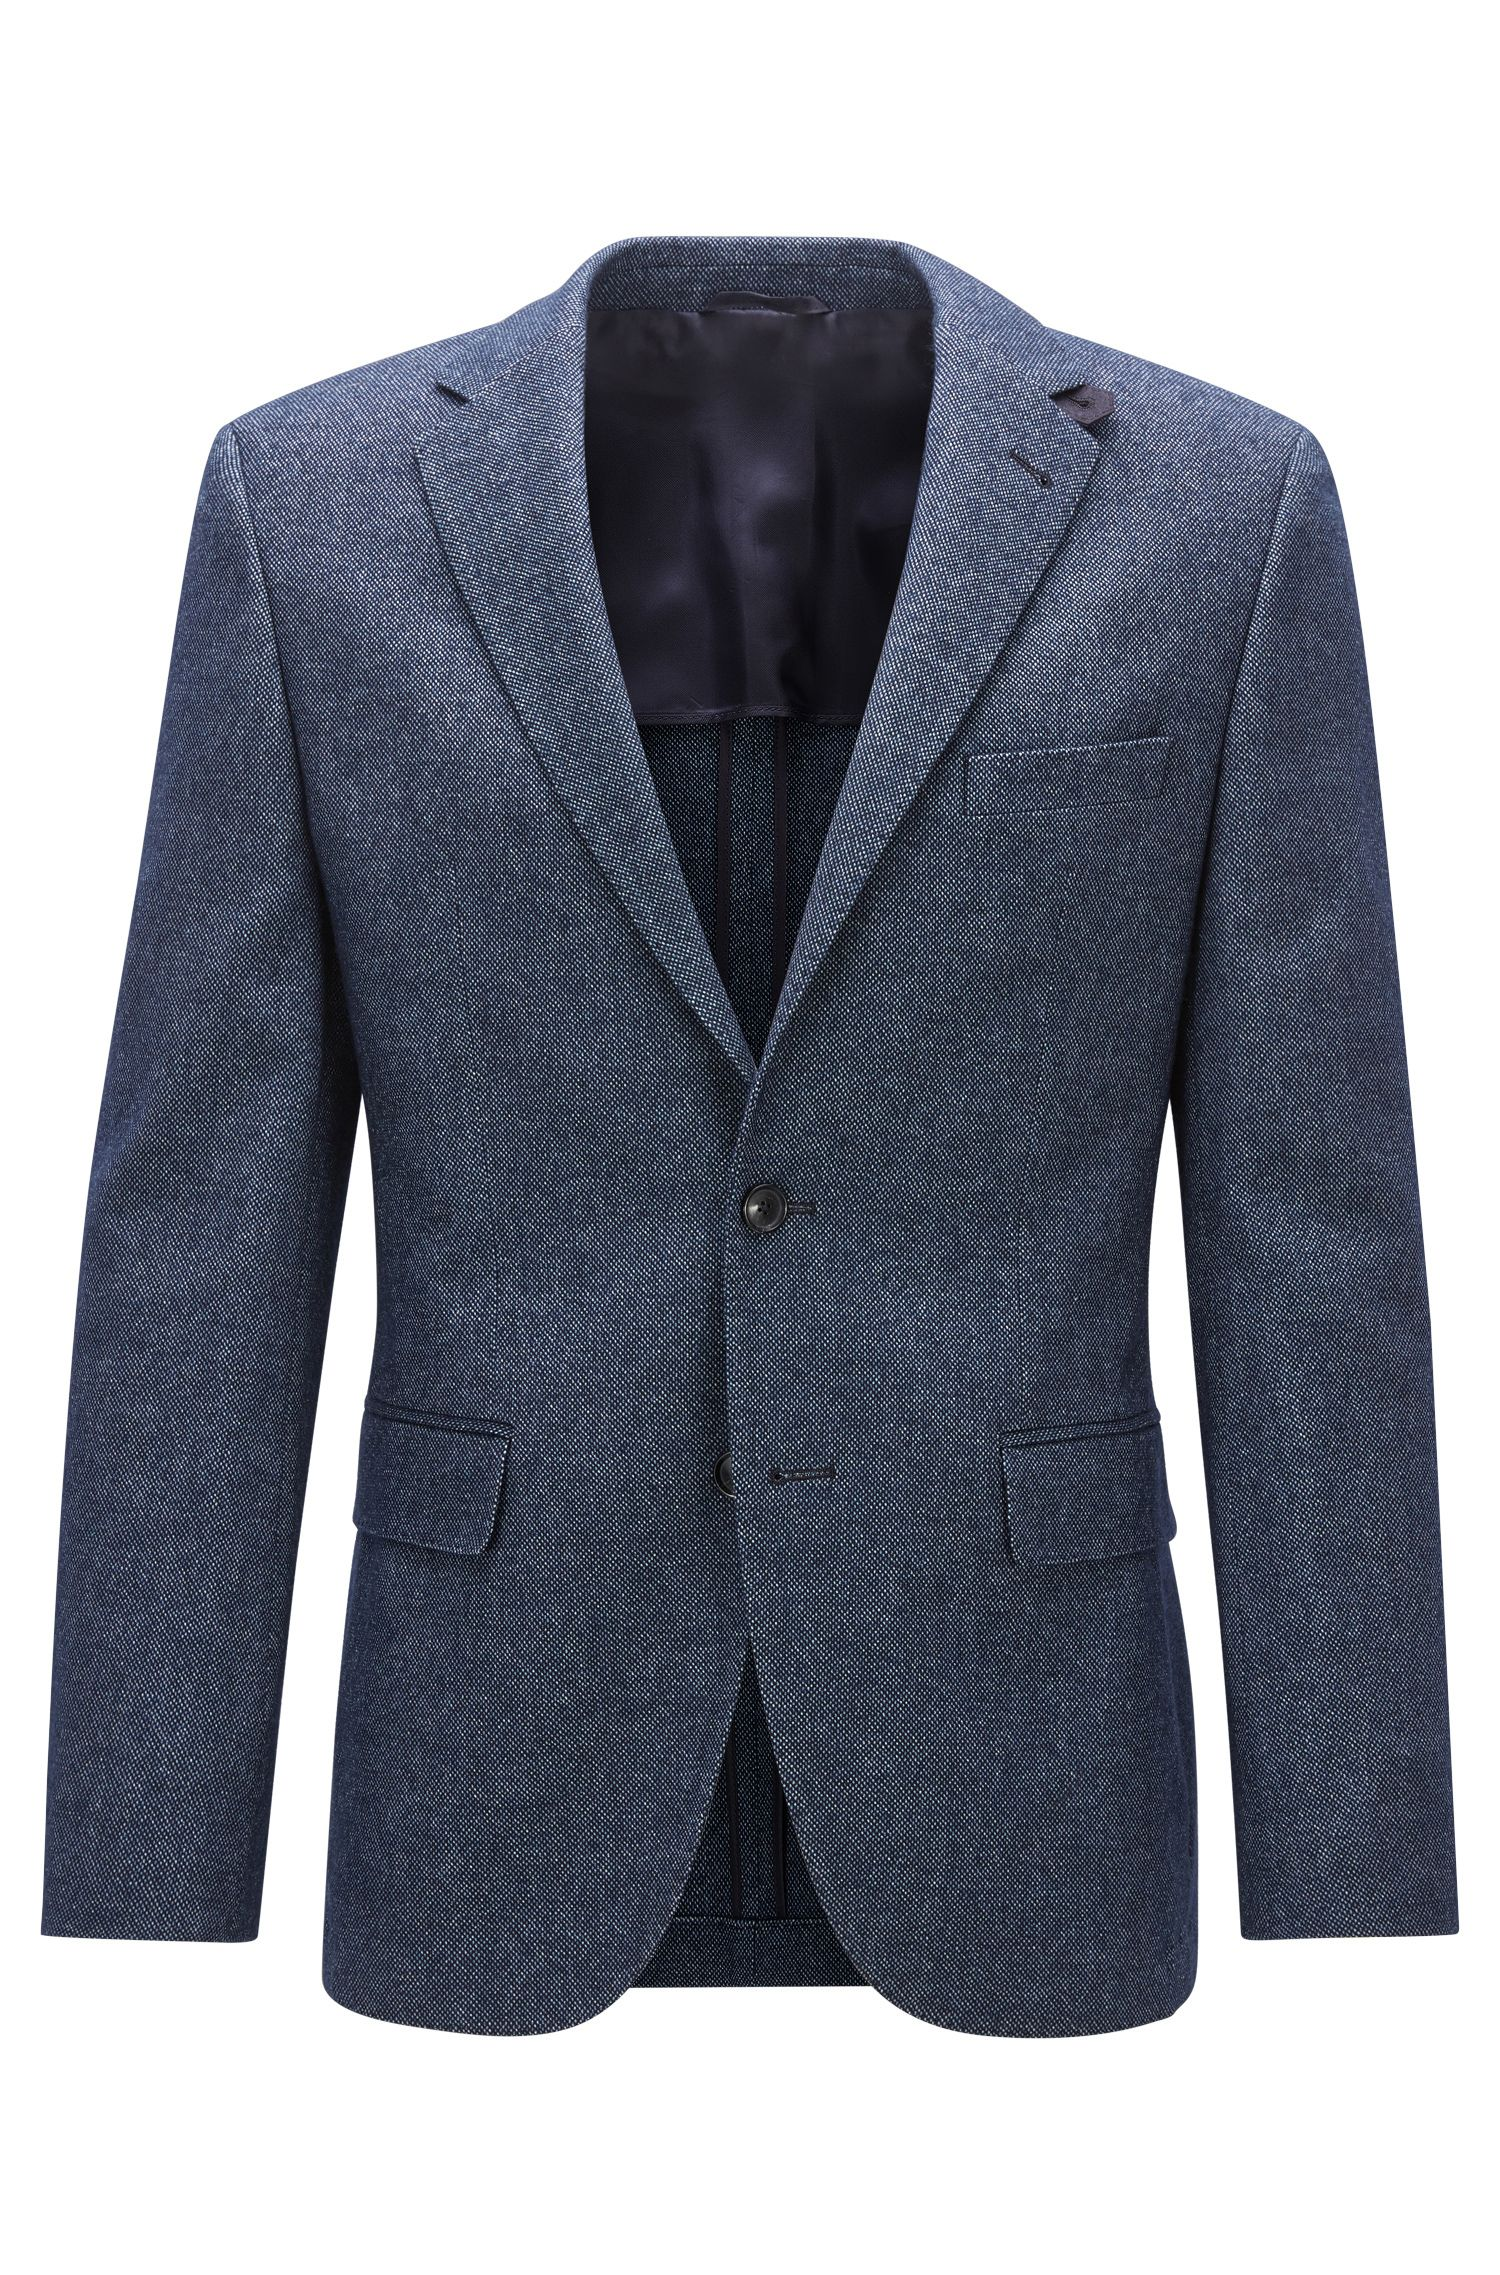 Regular-fit jacket in patterned fabric